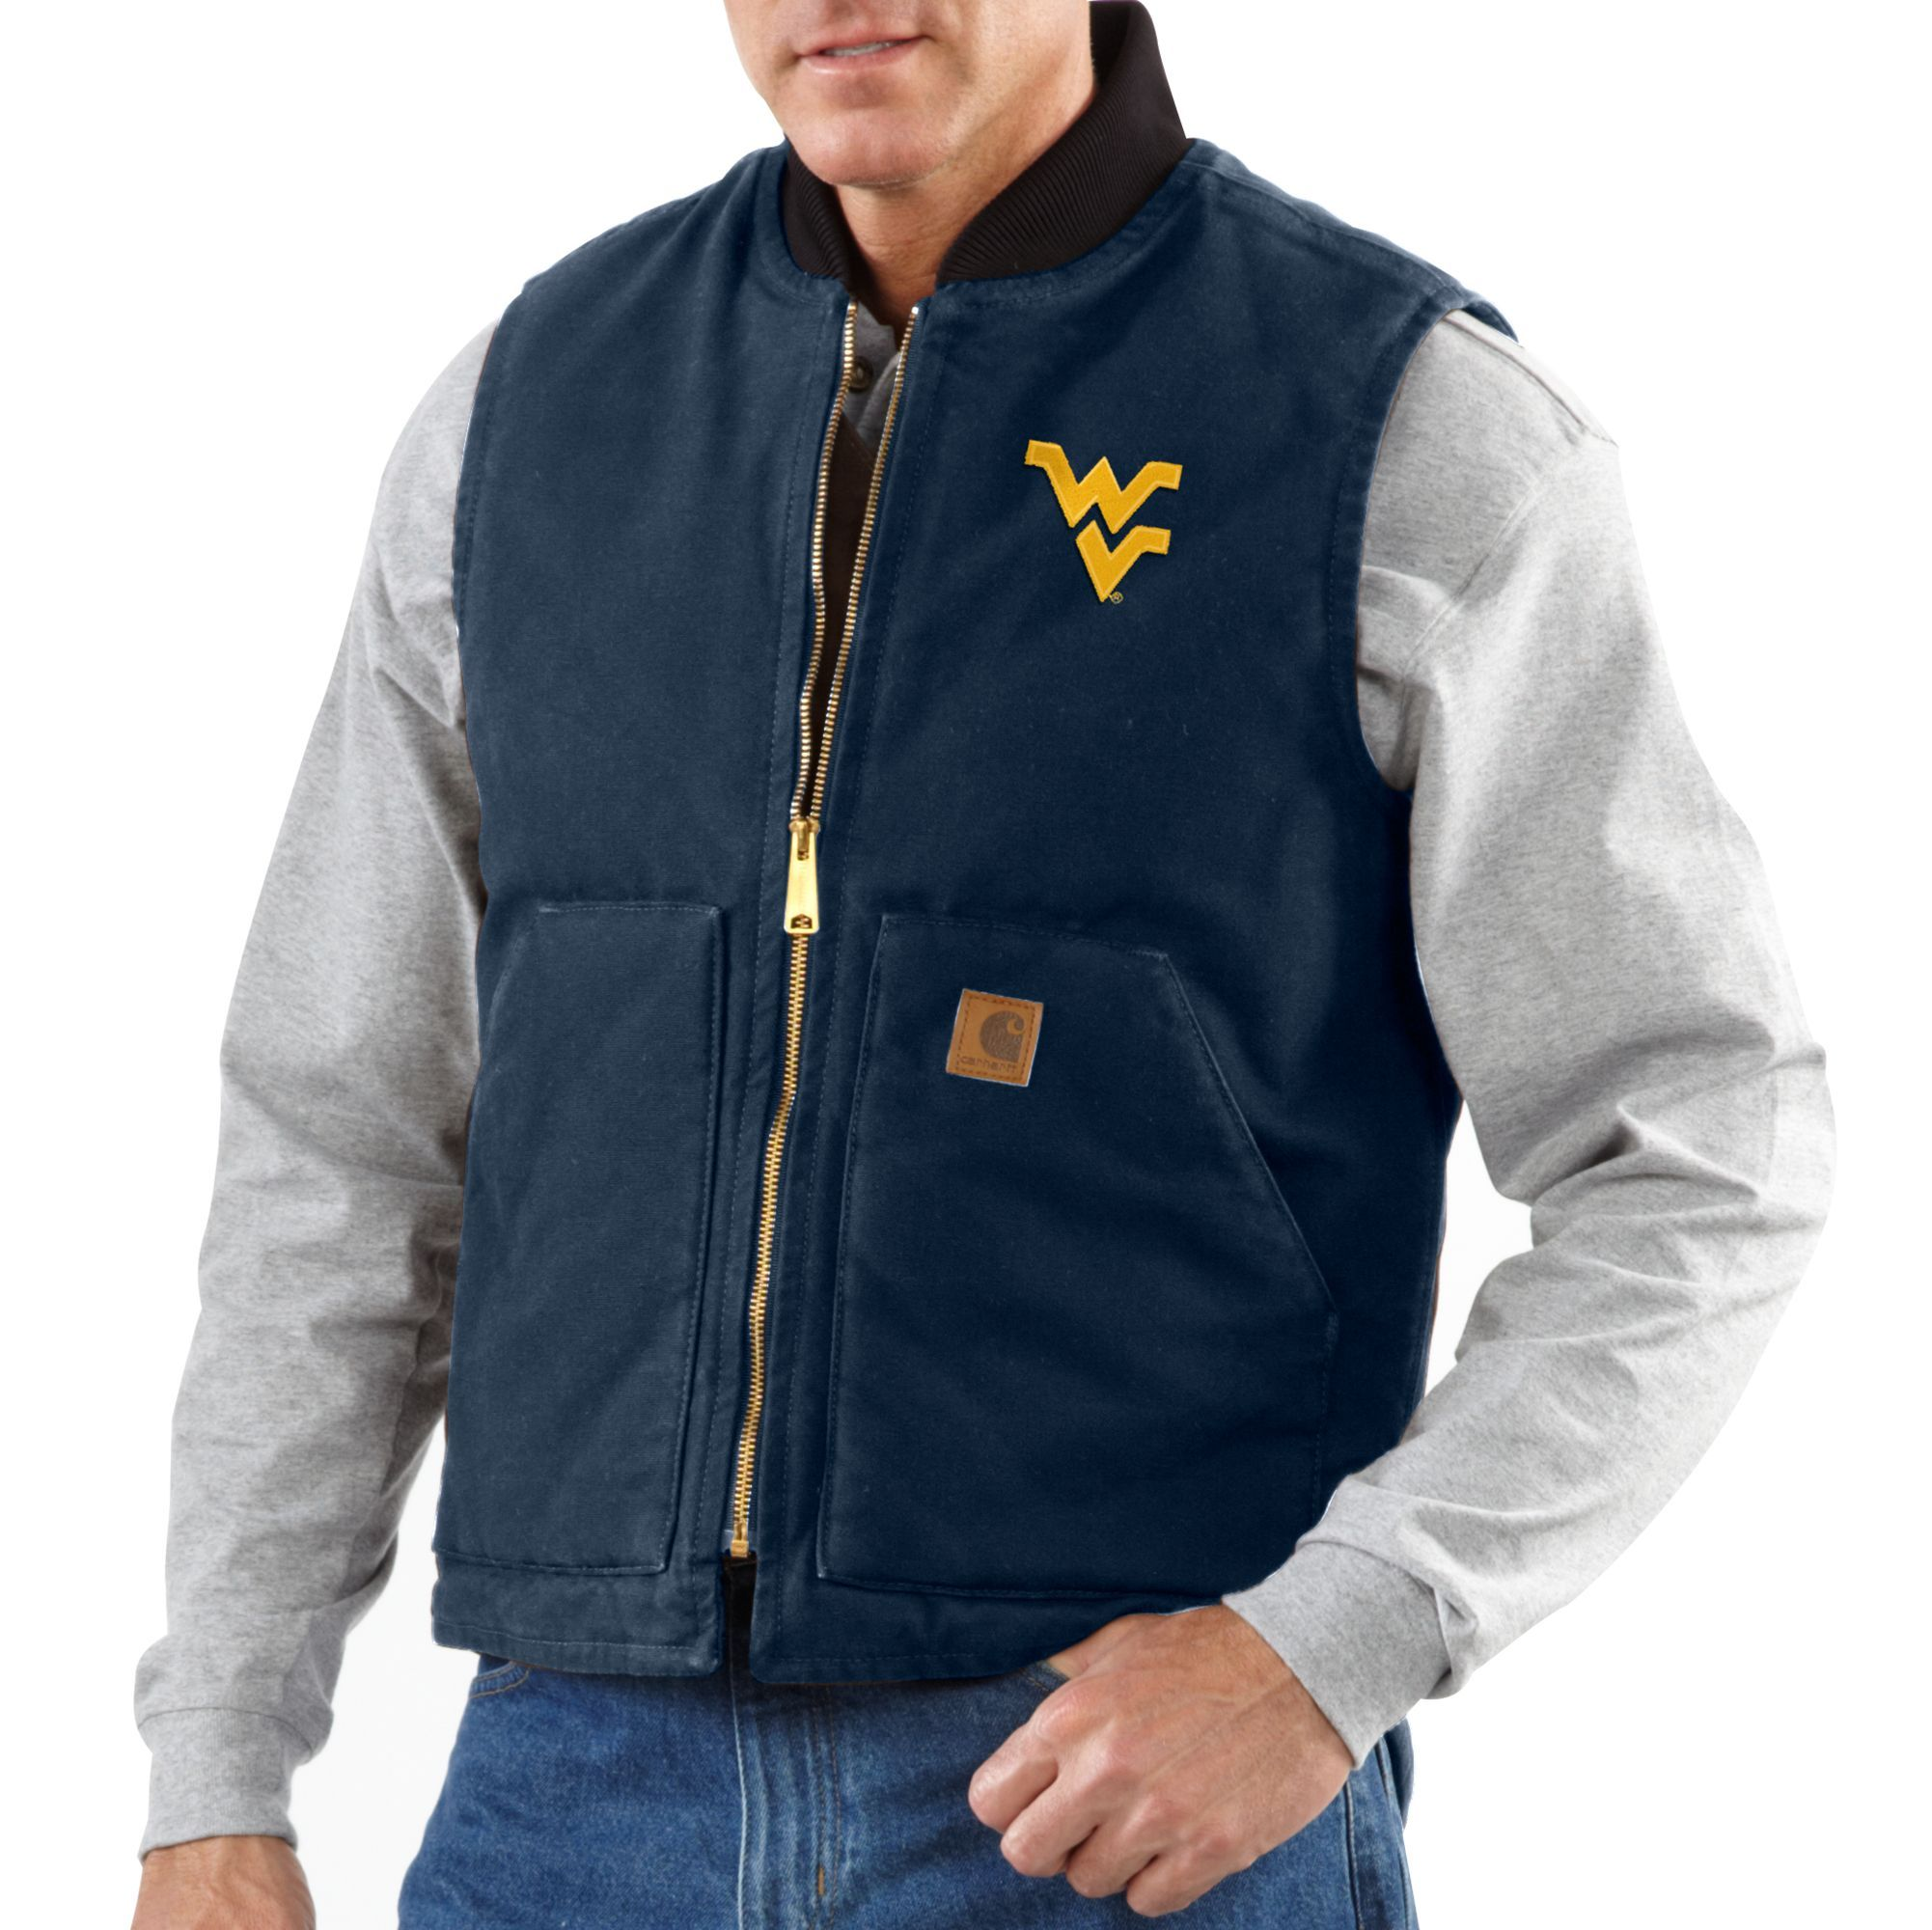 Check Out Carhartt S New Wvu Collection For Gift Ideas For The Men On Your Shopping List Carhartt Mens Carhartt Carhartt Vest